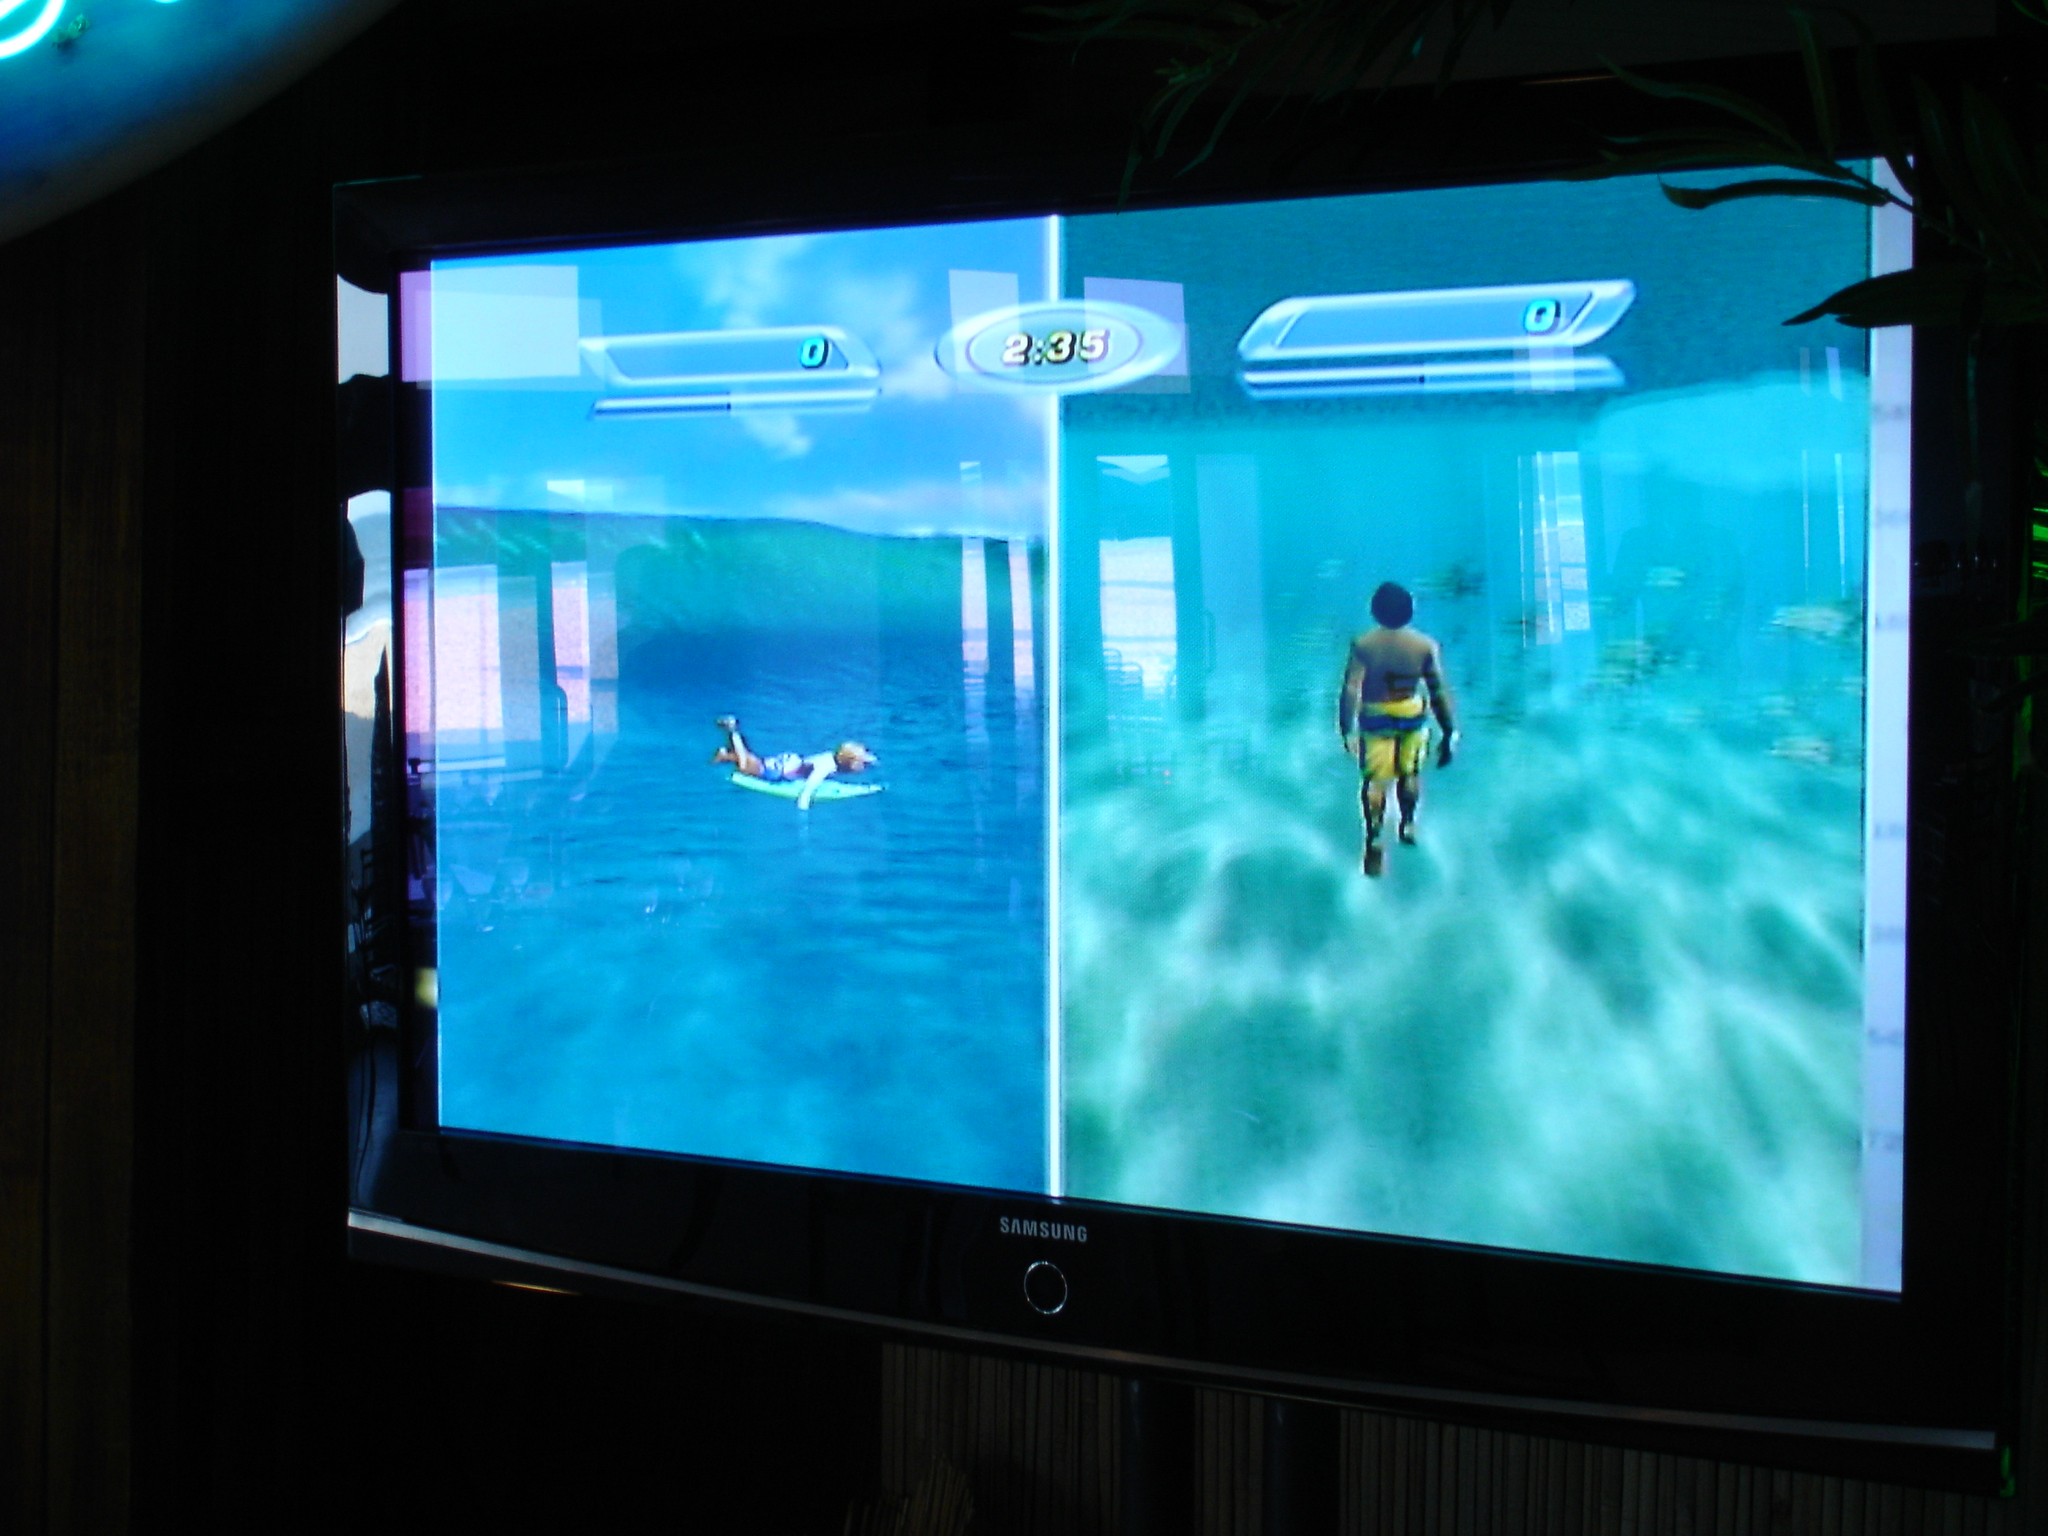 surfs up urban surfer video game simulator orlando rental las vegas  absolute amusements (19)